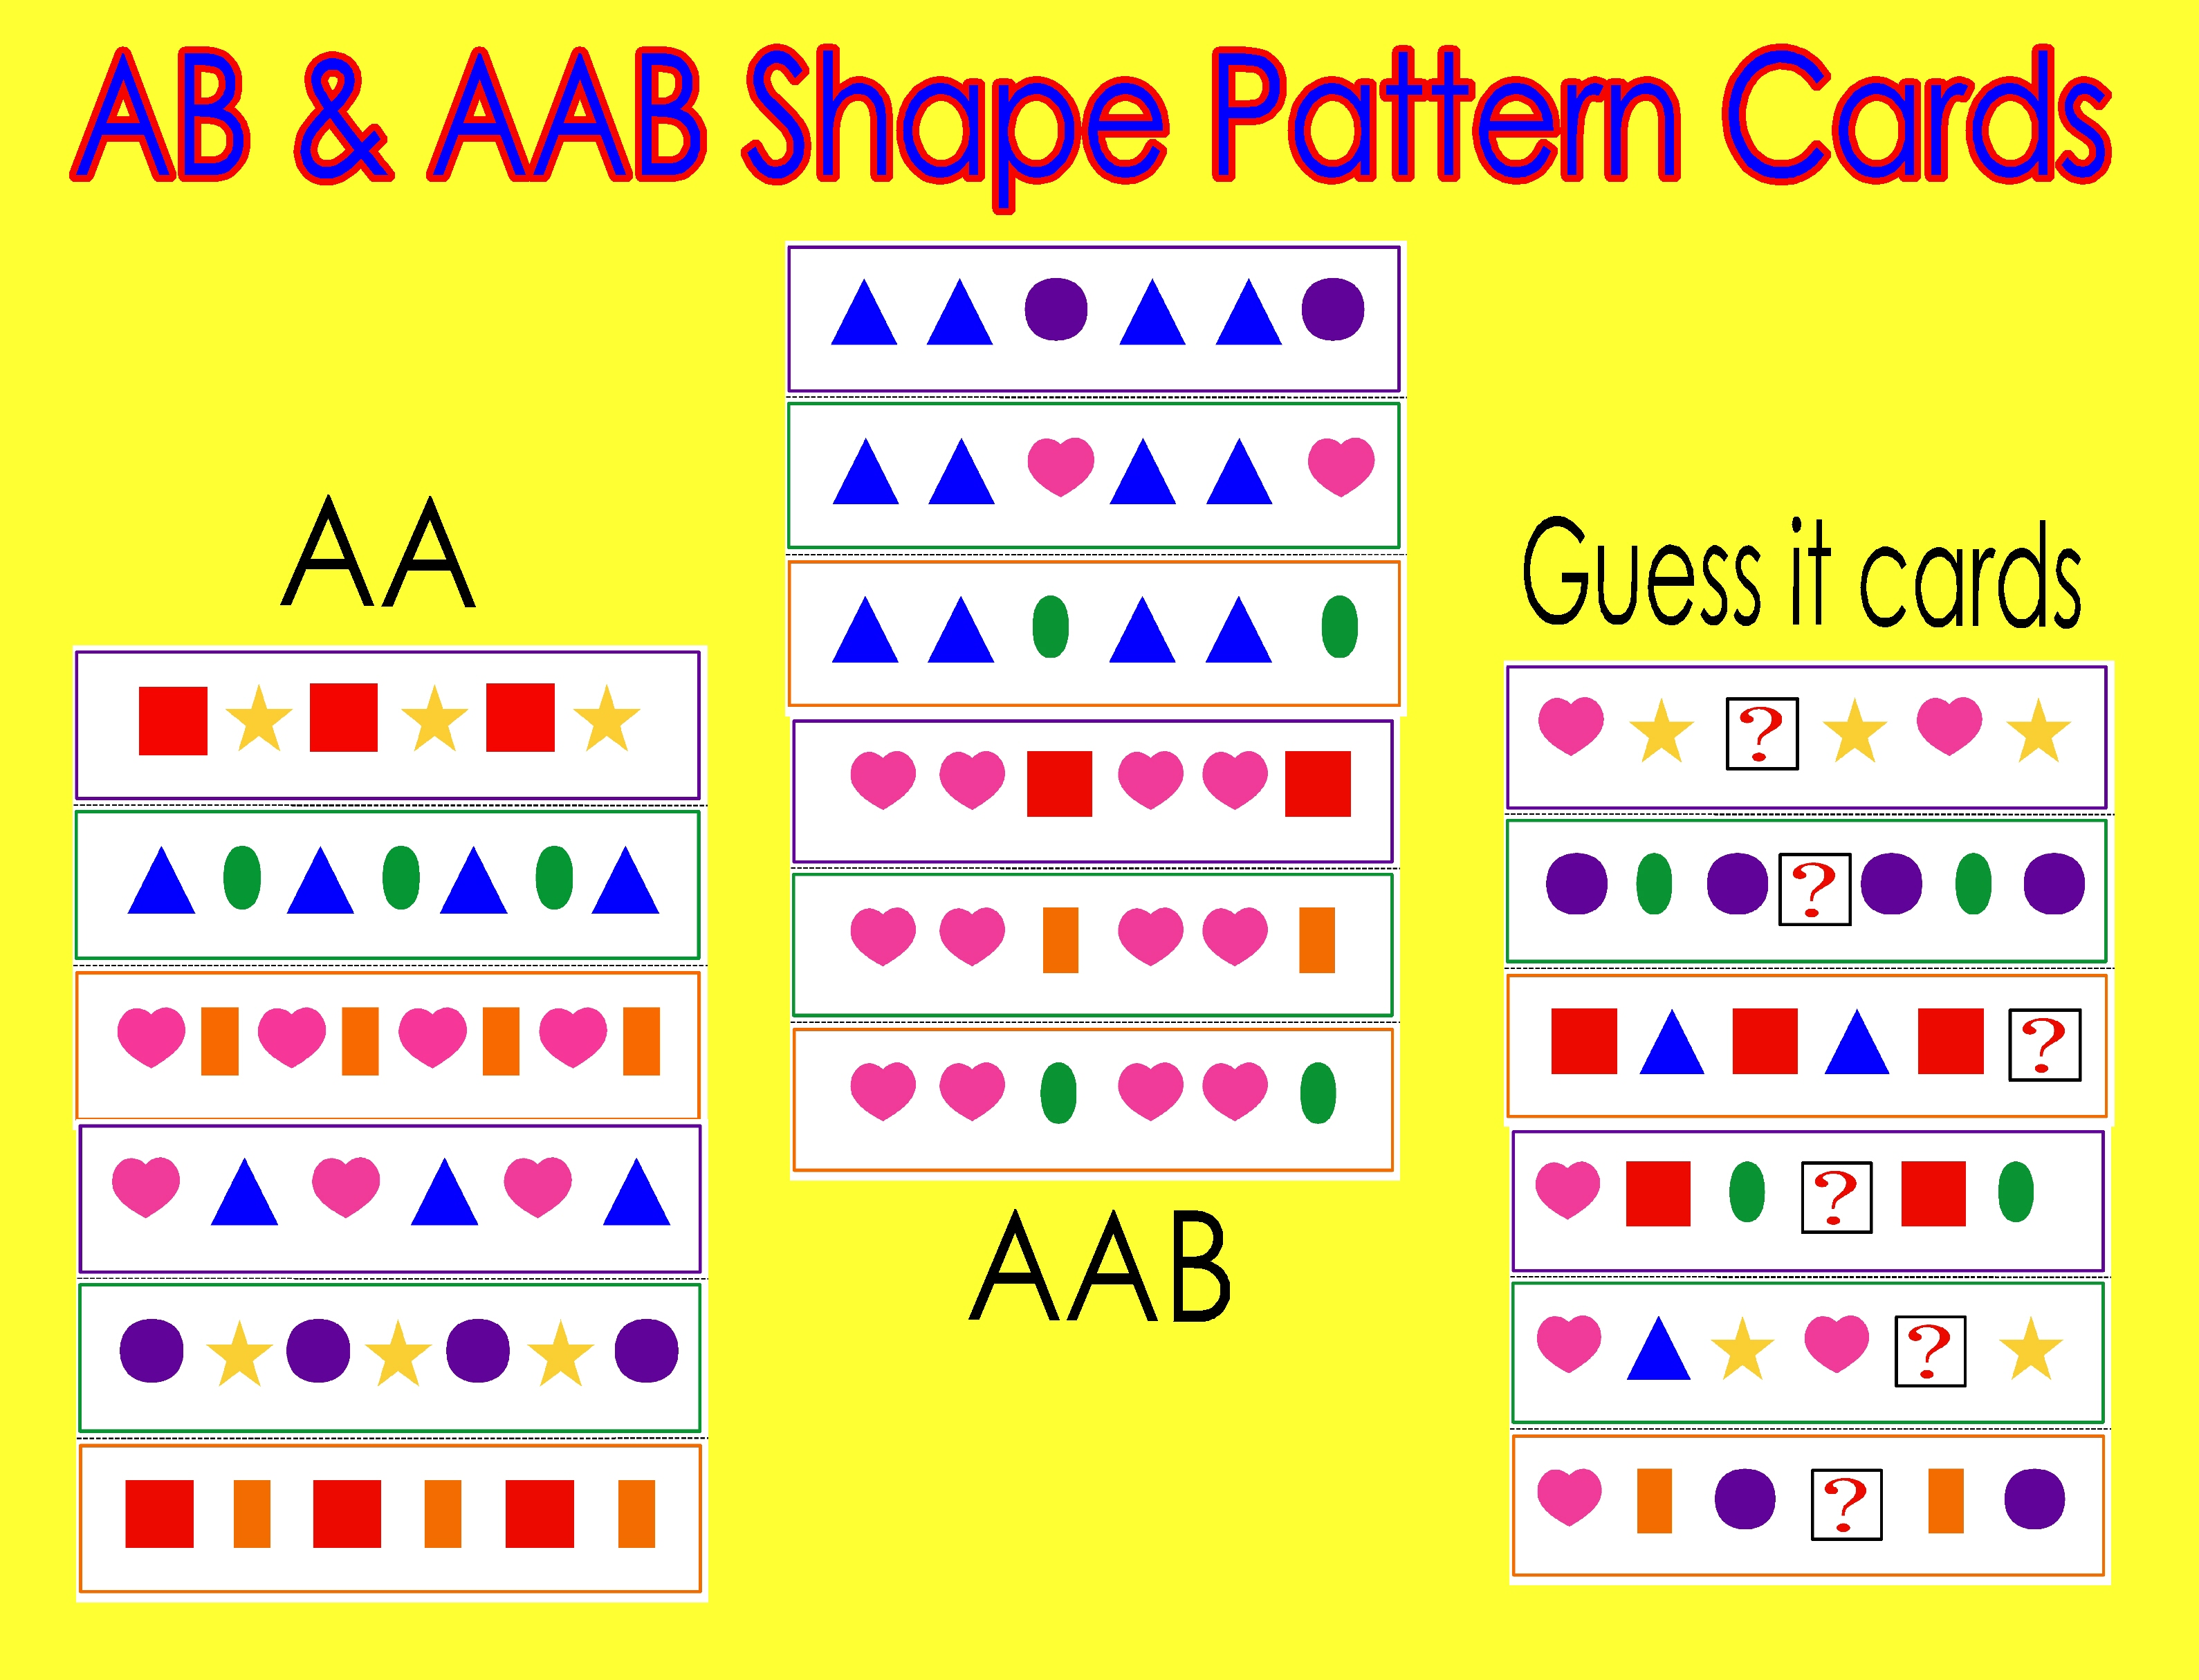 AB &AAB Shape Pattern Cards - Meet The Needs